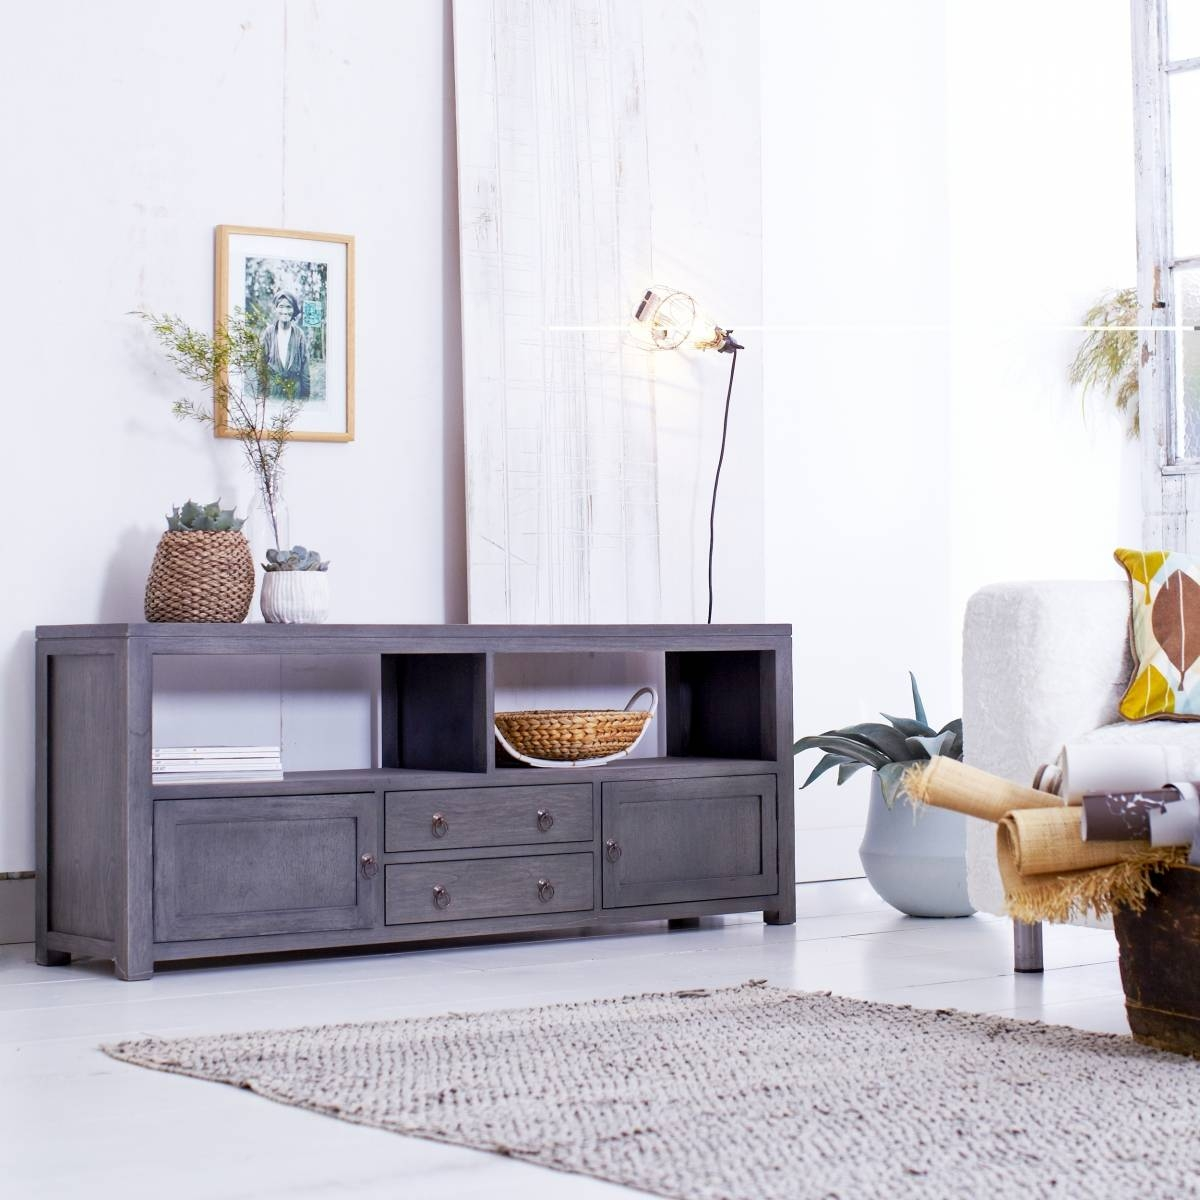 Tikamoon Solid Painted Grey Mindi Tv Cabinet Entertainment Unit Tv intended for Grey Wood Tv Stands (Image 8 of 15)